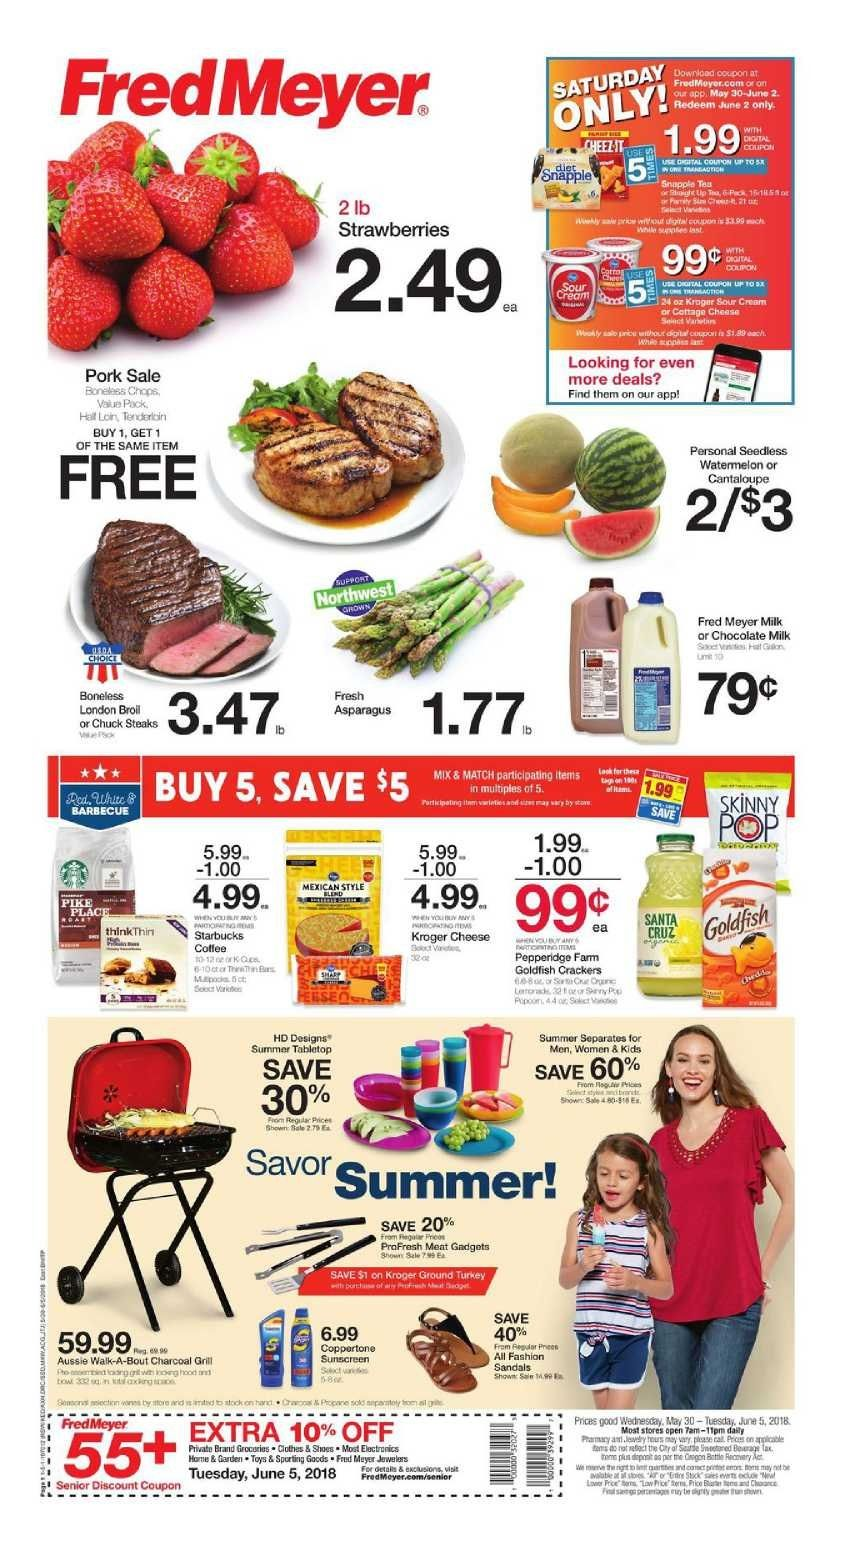 Fred Meyer Weekly Ad flyer January 16 - 22, 2019 | Weekly Ad